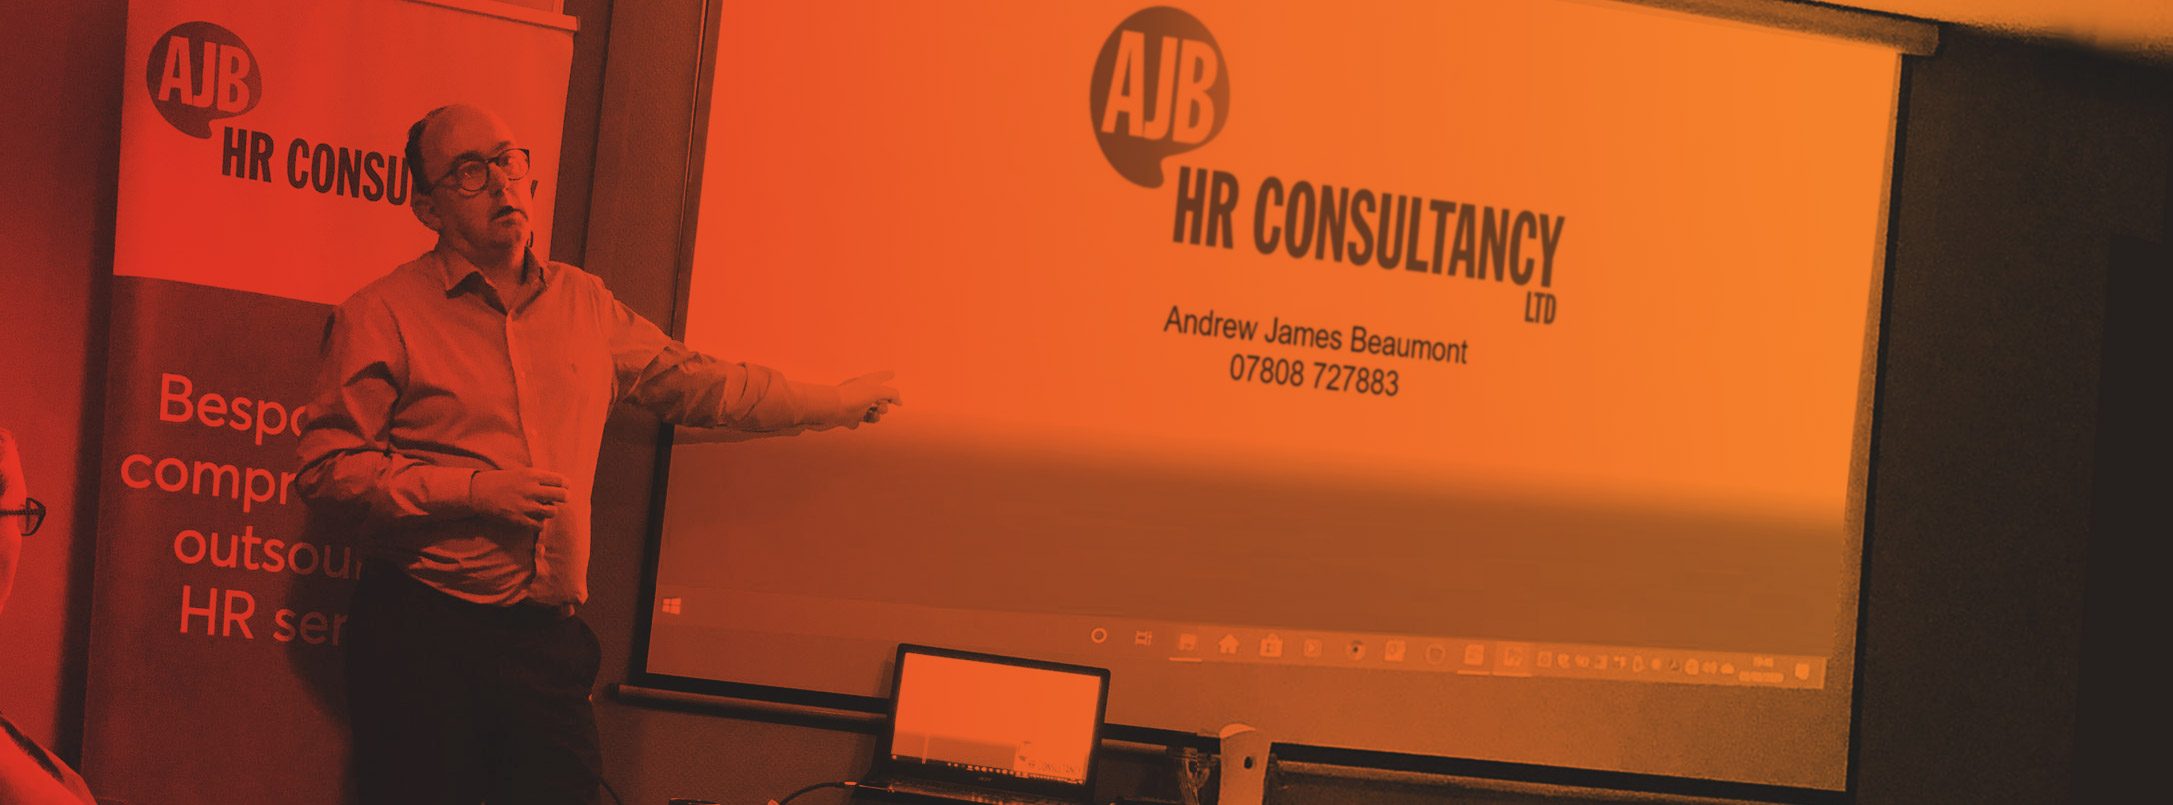 AJB HR Consultancy Human Resources